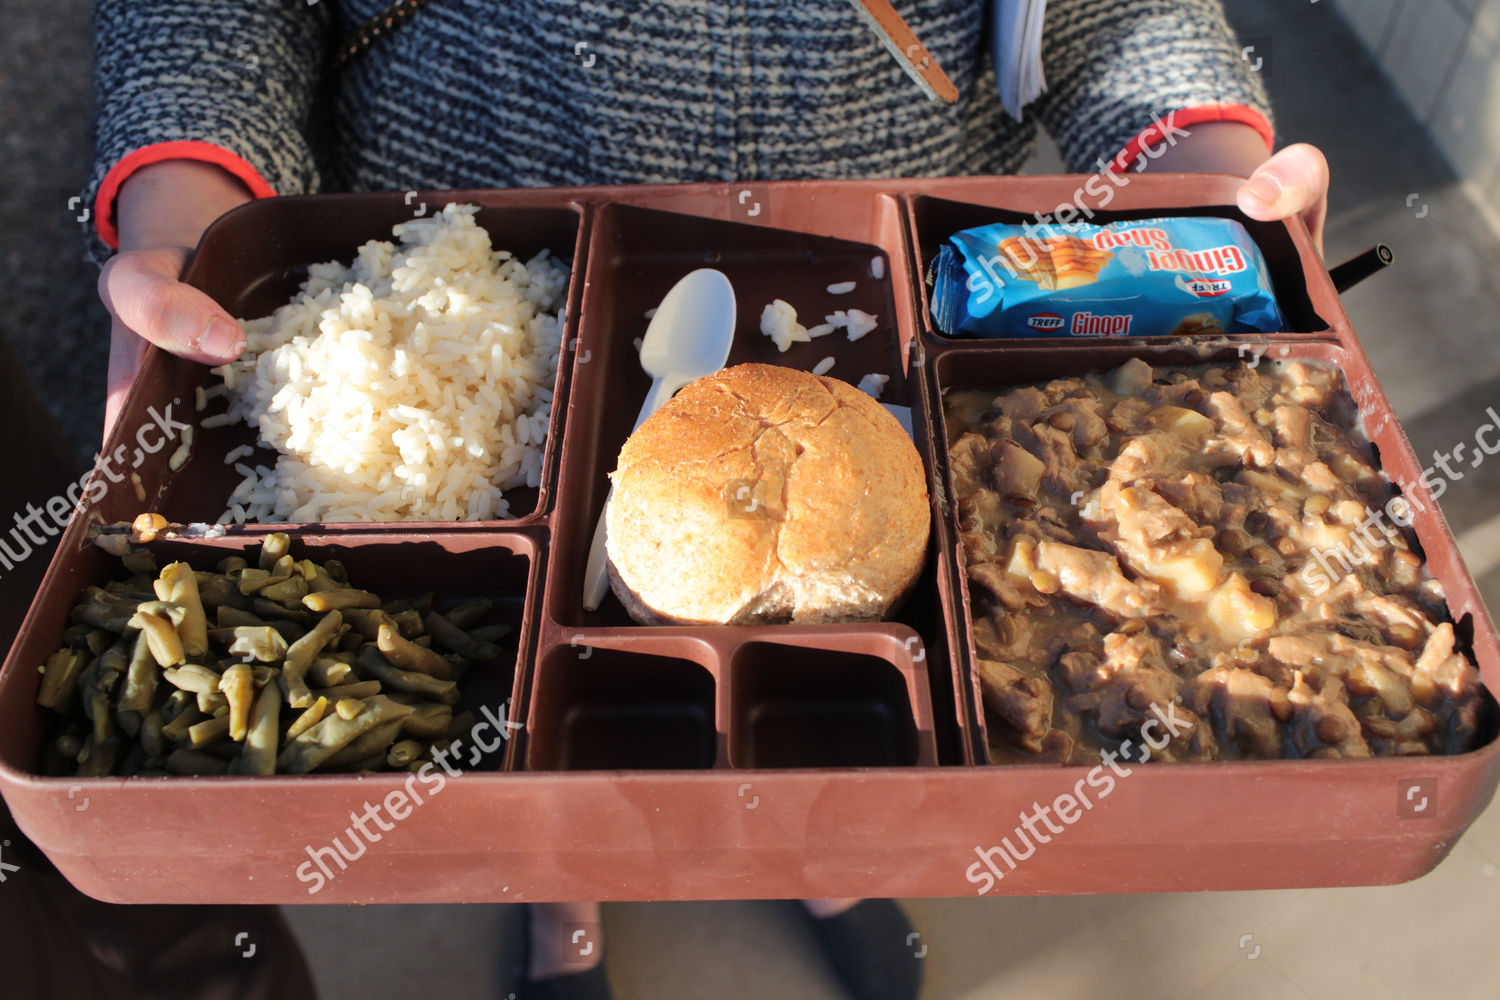 Prison slop dinner Editorial Stock Photo - Stock Image